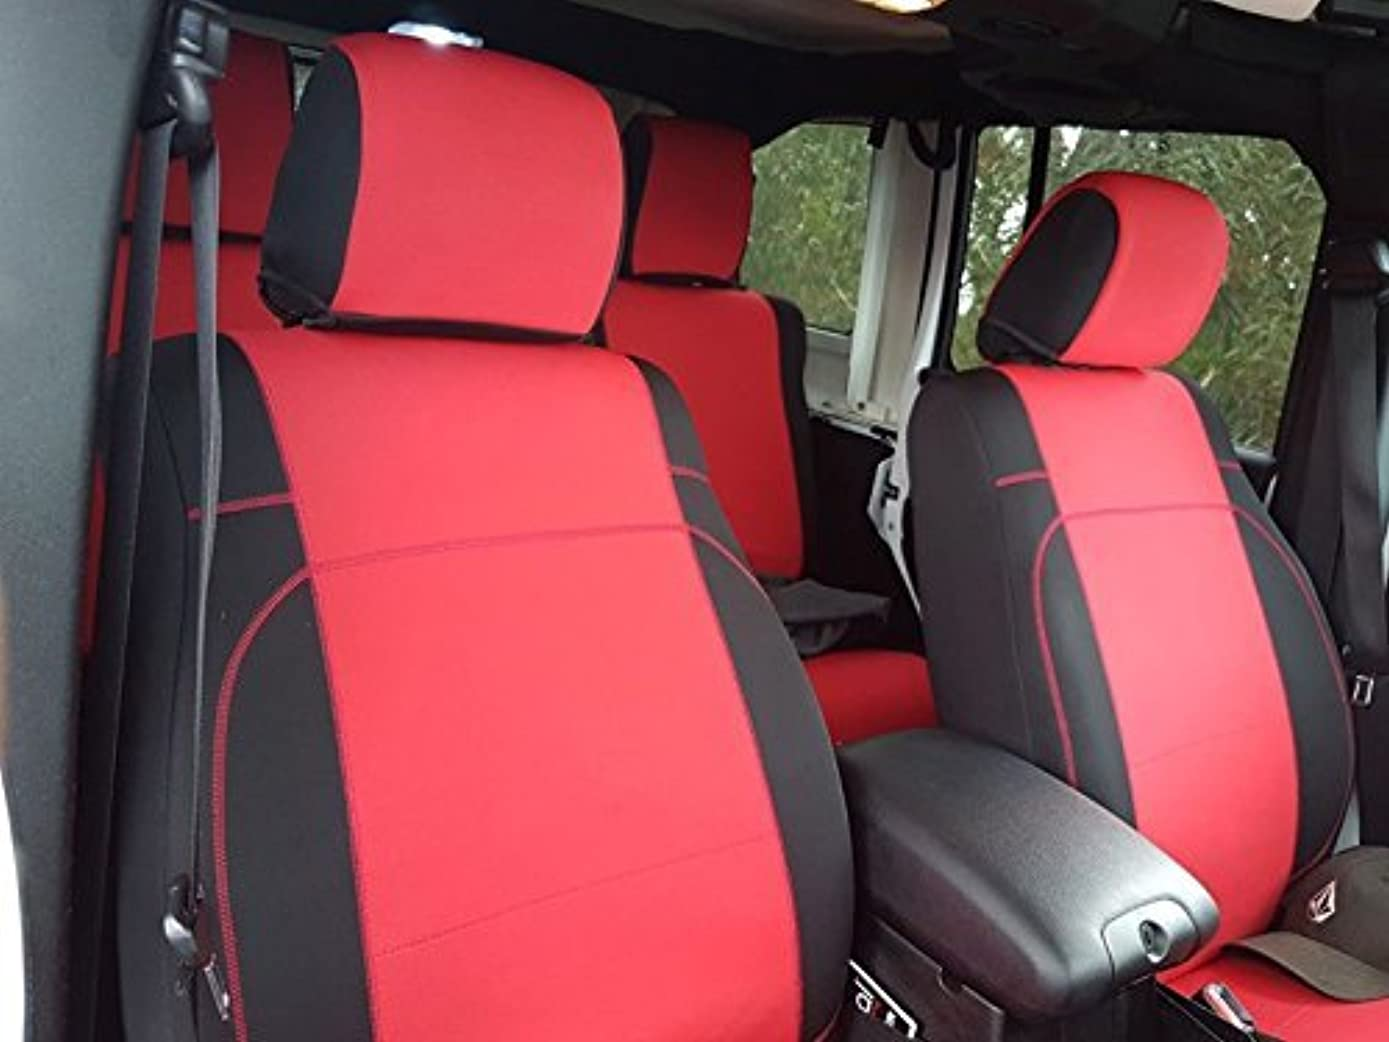 GEARFLAG Neoprene Seat Cover Custom fits Jeep Wrangler JK 2/4 Doors 2007-17 with no Side airbag (Front Pair Seats only) (Red/Black)